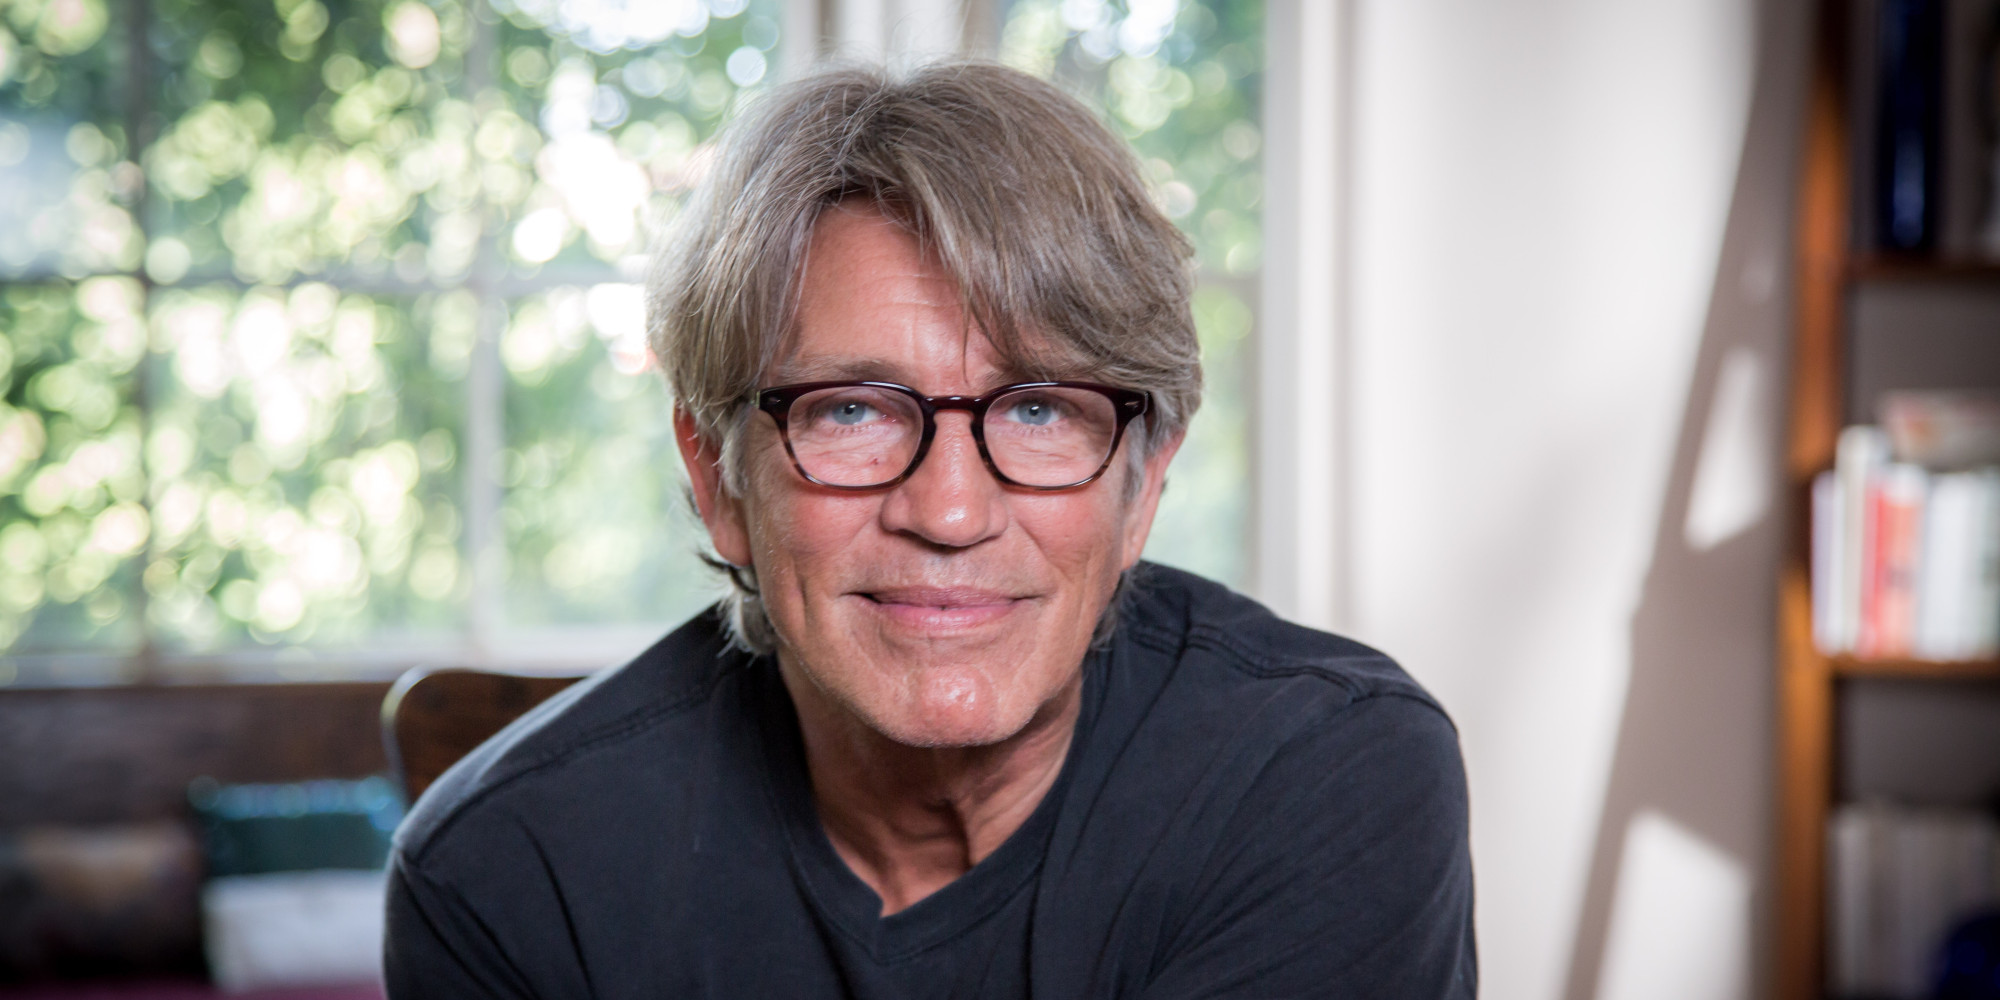 Eric Roberts – medical/board member   One of Hollywood's edgier, more intriguing characters running around and about for decades, Eric Anthony Roberts started life in Biloxi, Mississippi.  He made his debut alongside an intimidating roster of stars including Judd Hirsch, Susan Sarandon, Shelley Winters and Sterling Hayden. Young Eric held his own expertly (winning a Golden Globe nomination) while his burning intensity and brooding charm marked sure signs of star potential.